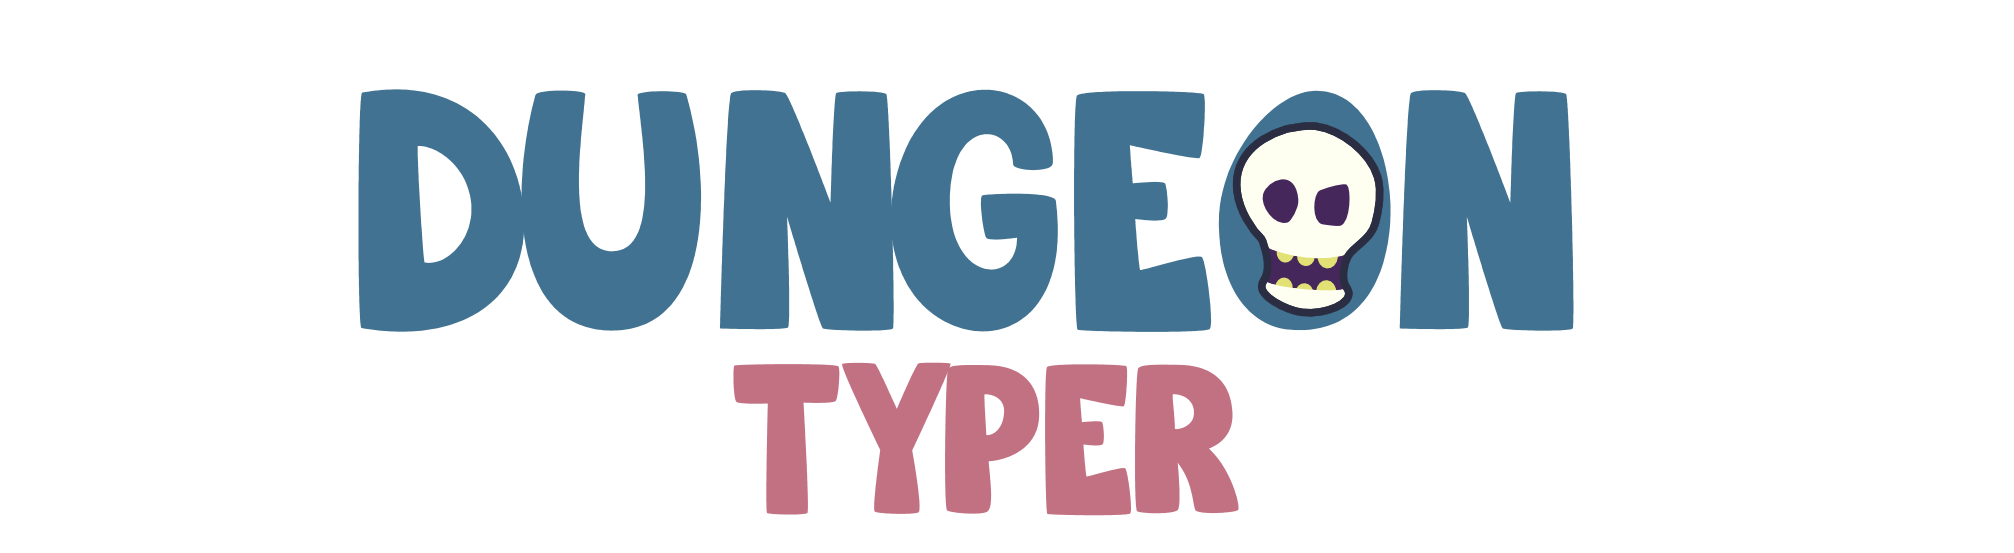 dungeon typey type